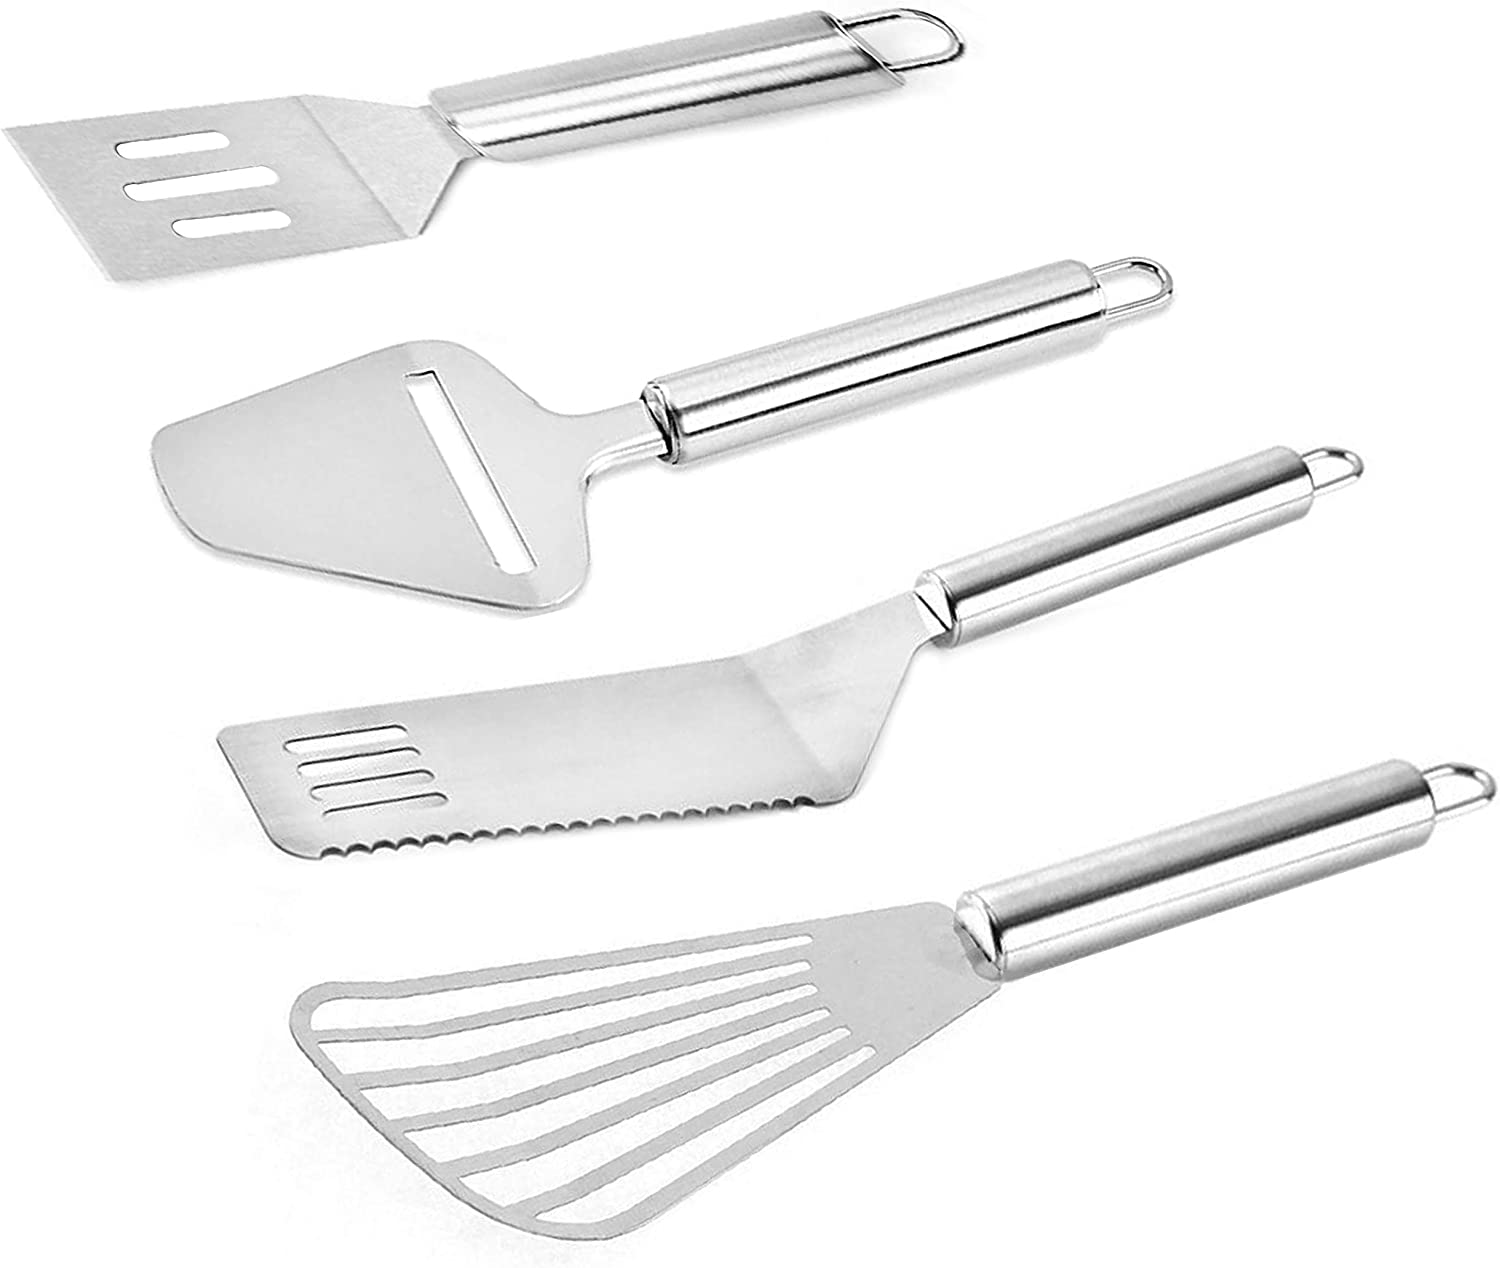 Stainless Steel Spatula Turner Set Fish Slo Portable Branded goods Fashionable